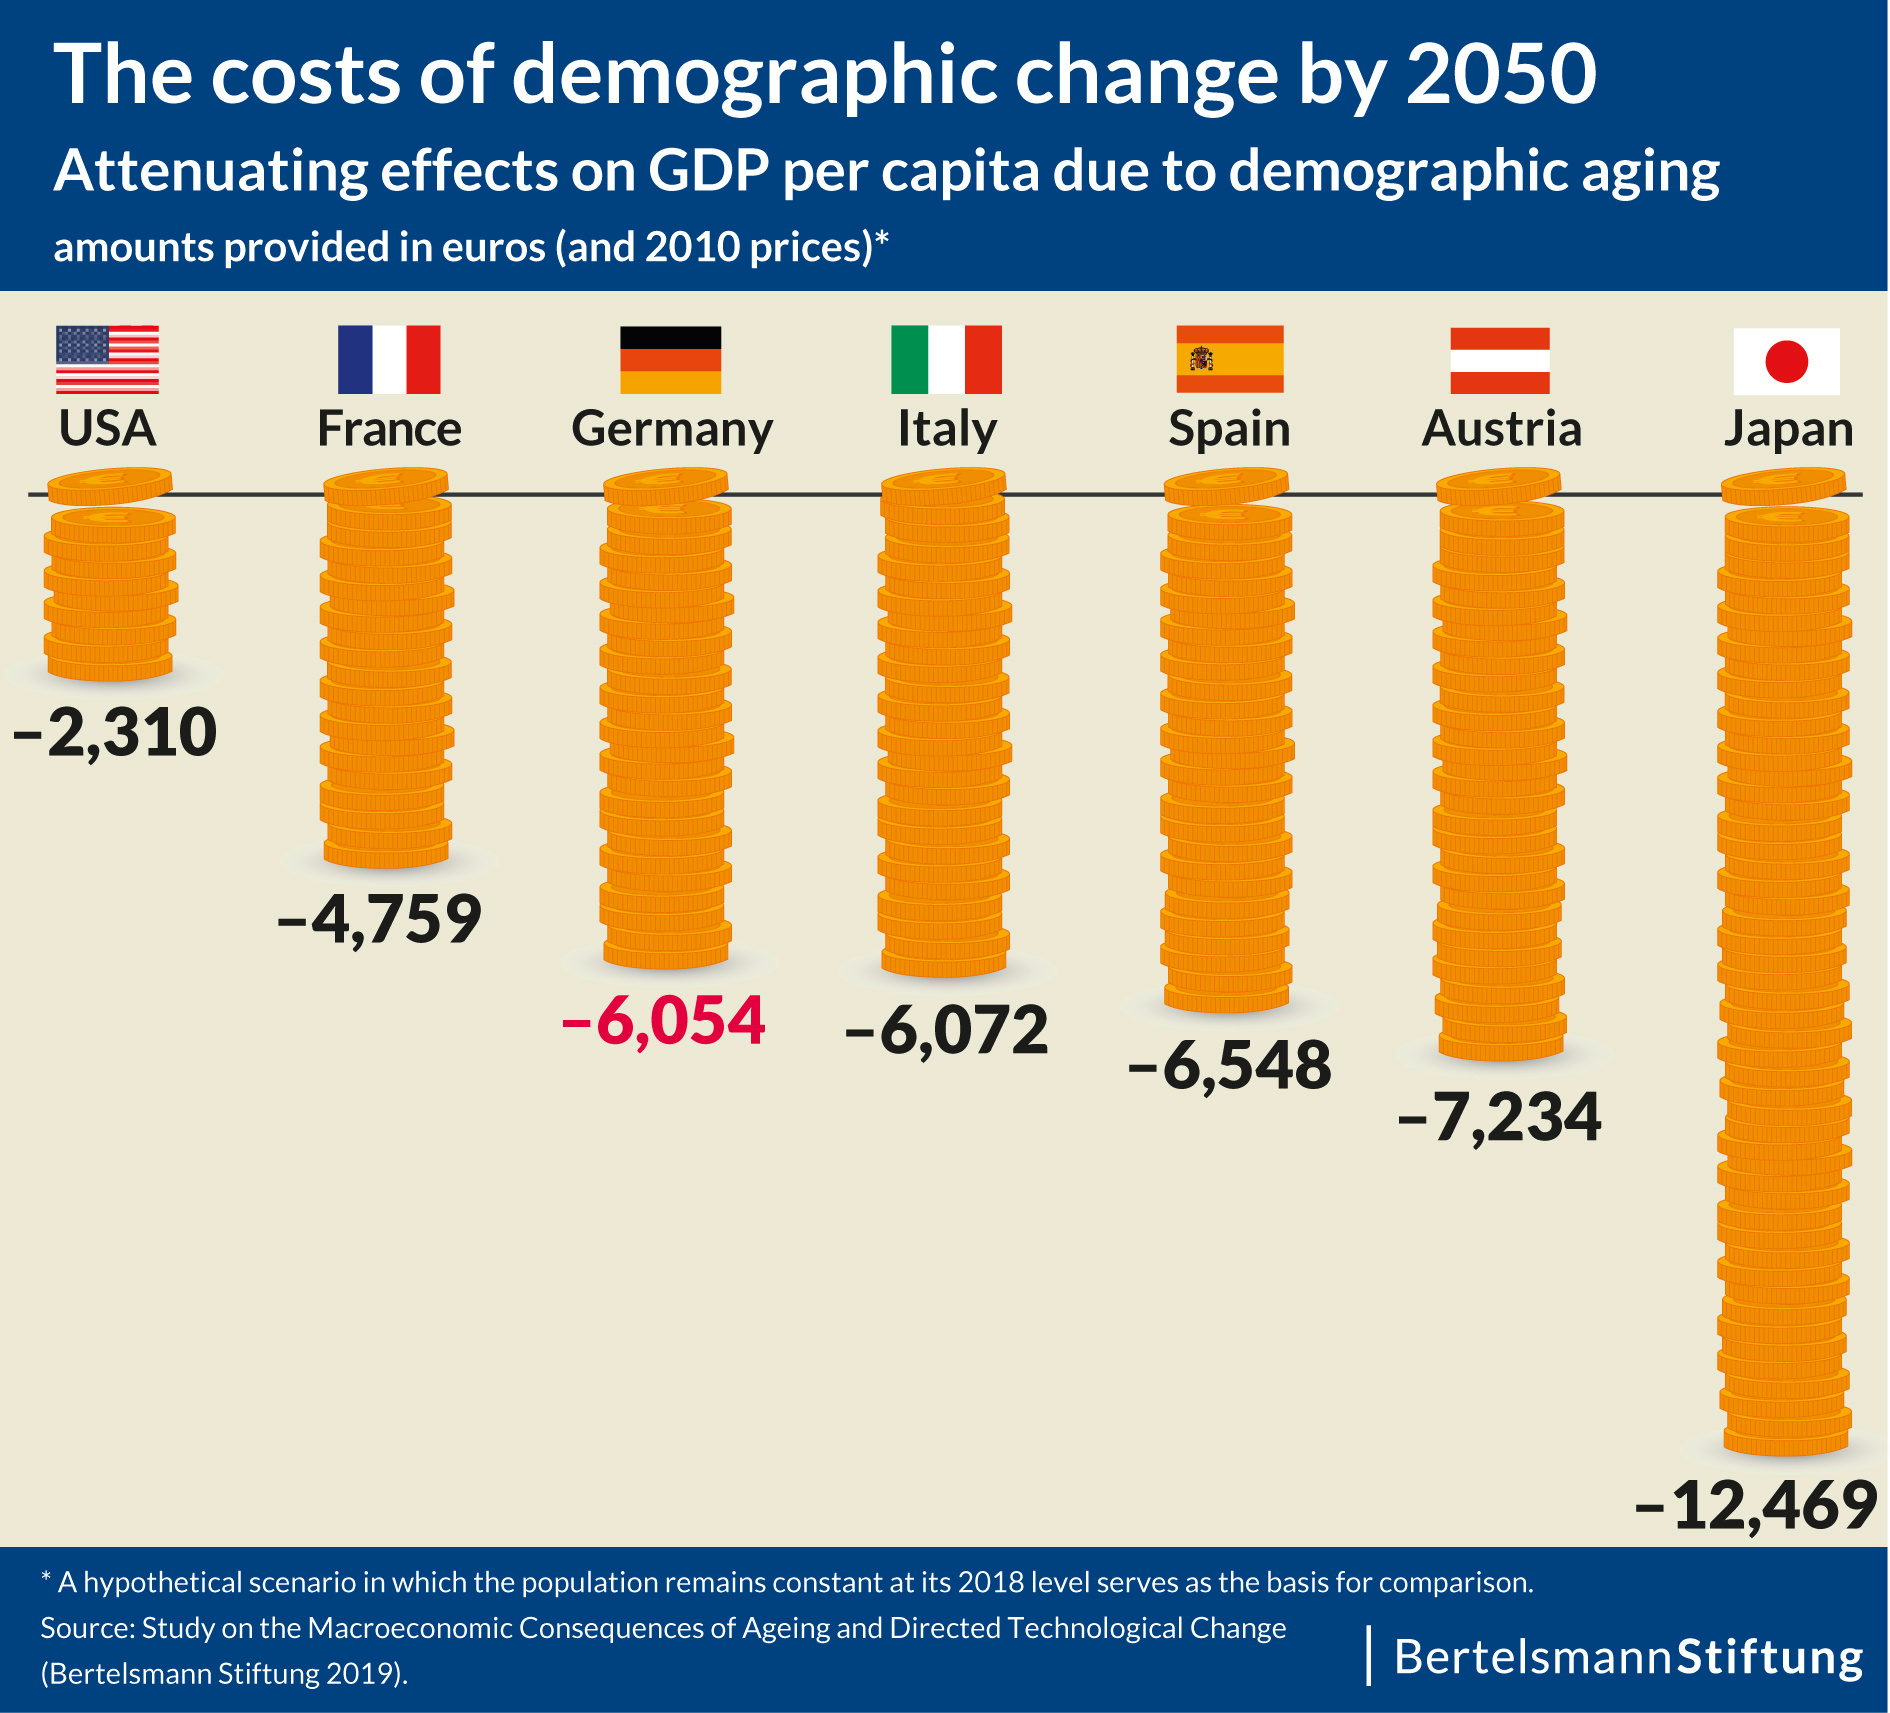 The costs of demografic change by 2050